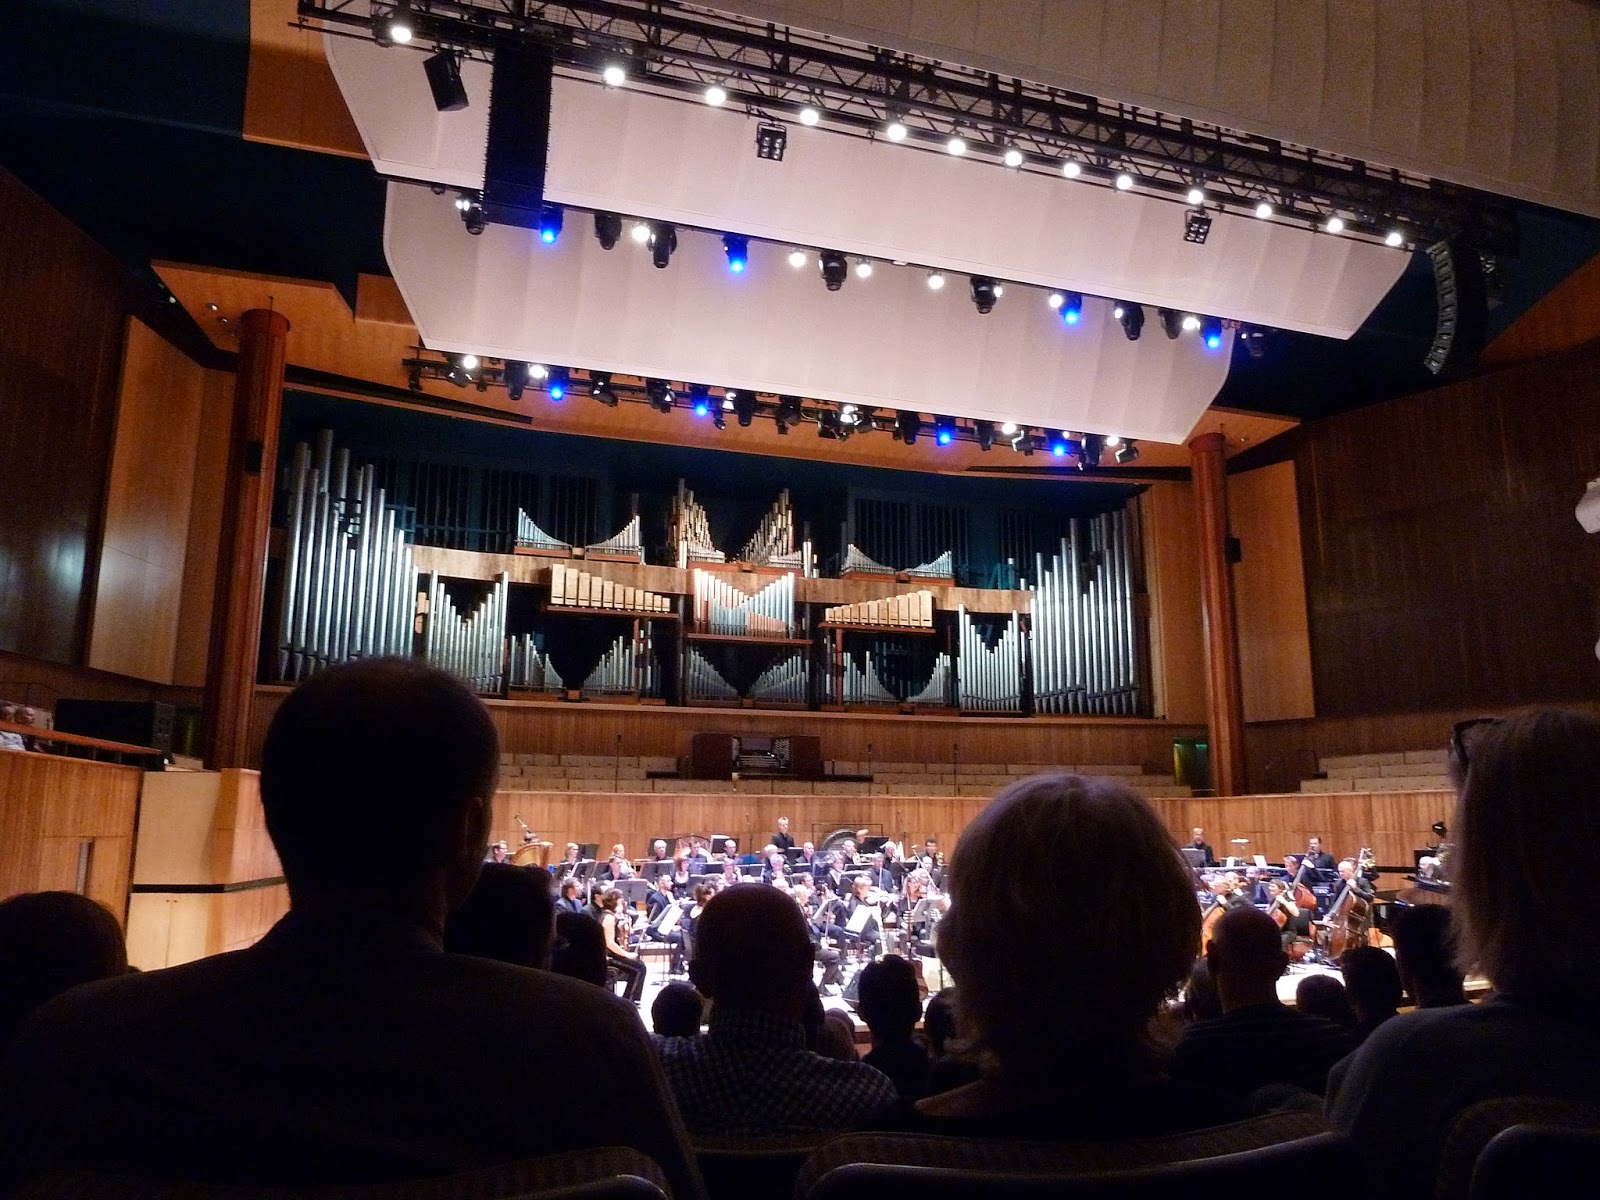 David Arnold, Royal Festival Hall London, 2014